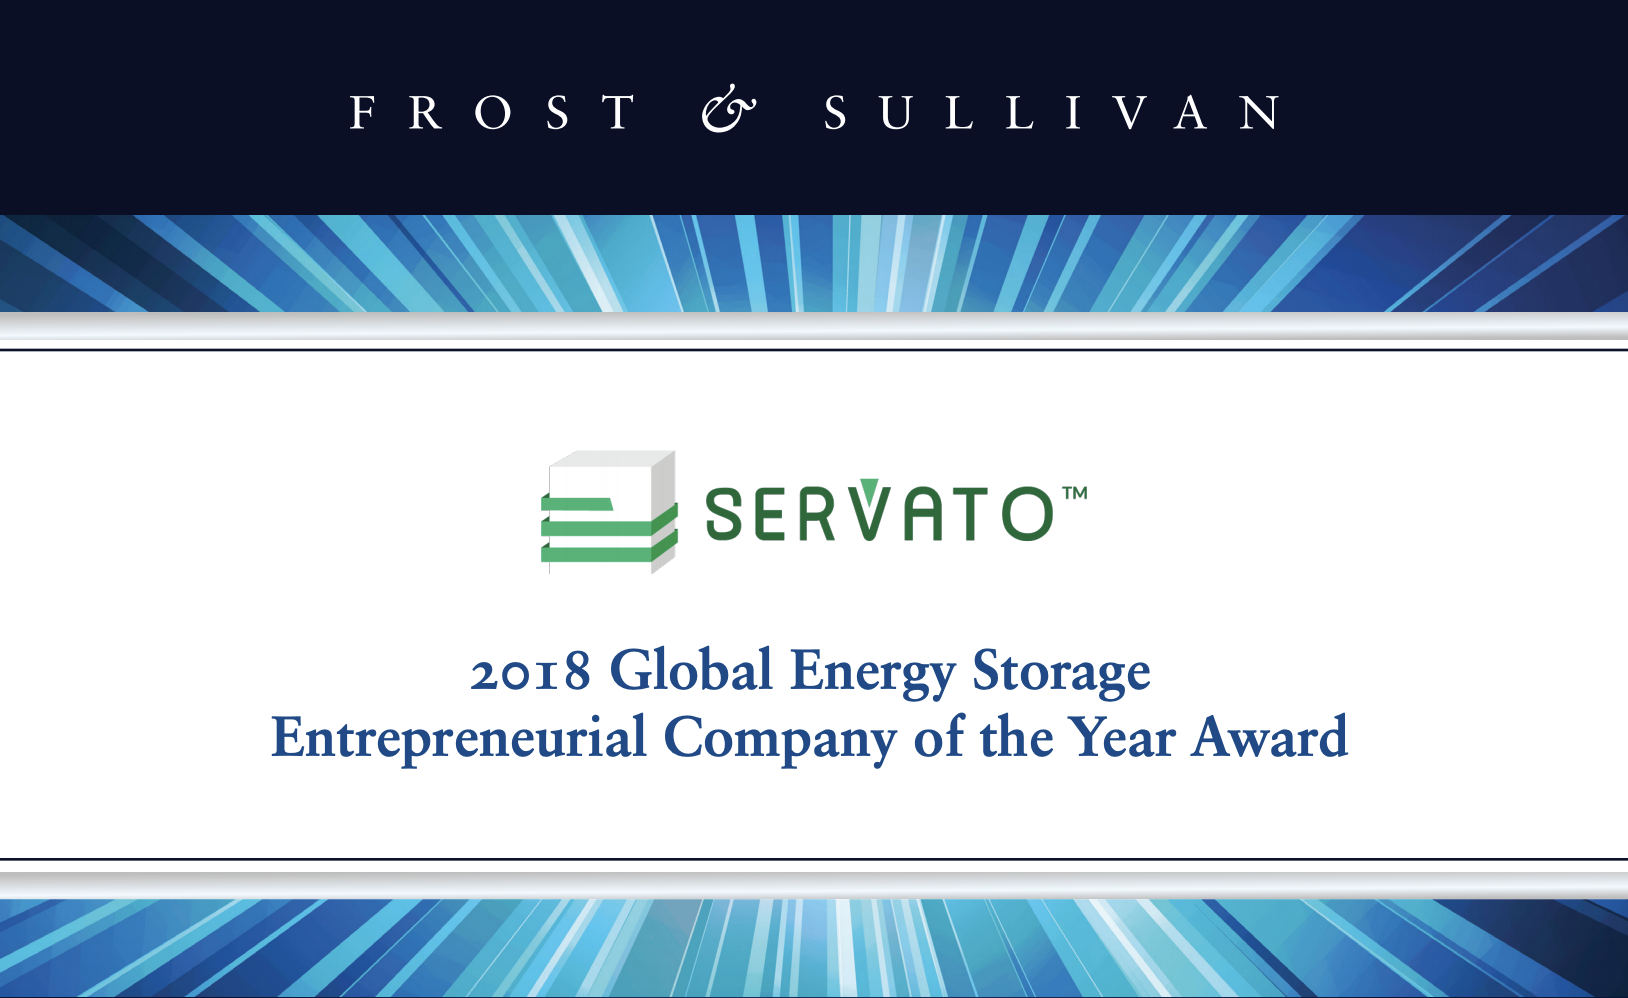 Frost and Sullivan Announces 2018 Global Entrepreneurial Company of the Year